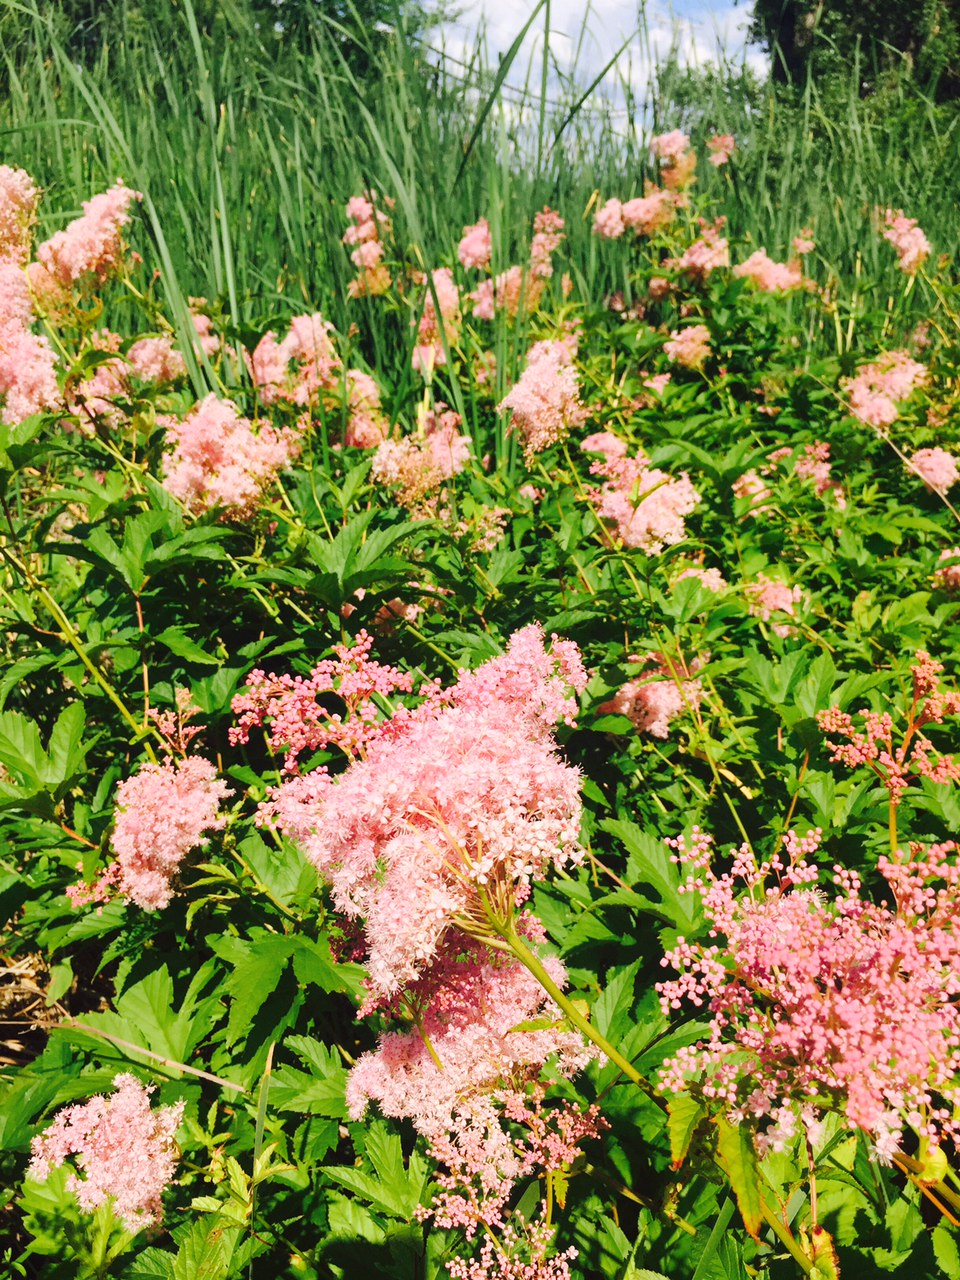 Sparkling Prairie Usda Queen Lyscented Saving One Weed At A Time Ist Queen Prairie Facts Rose Family Prairie A Wetland Plant Queen houzz-02 Queen Of The Prairie